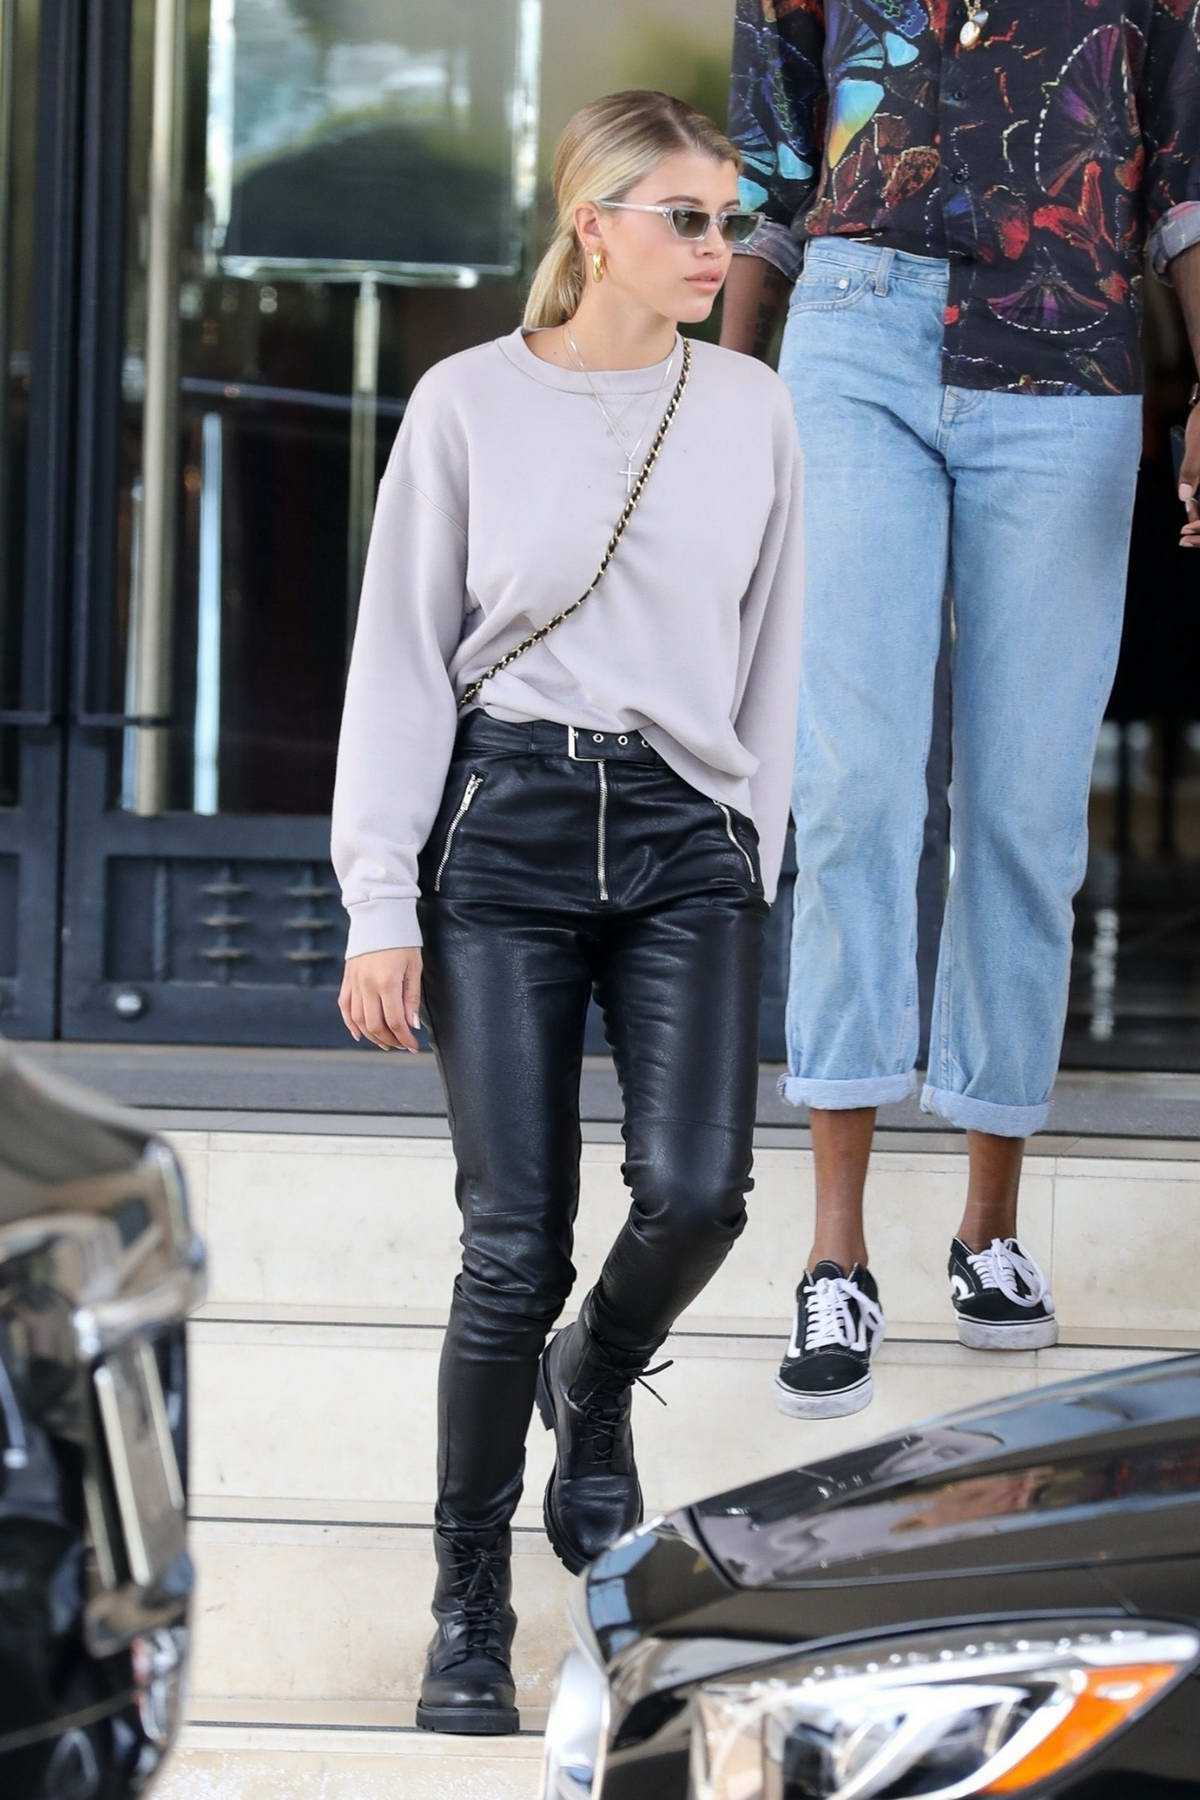 Sofia Richie exits Barney's New York empty-handed while out shopping with a pal in Beverly Hills, Los Angeles